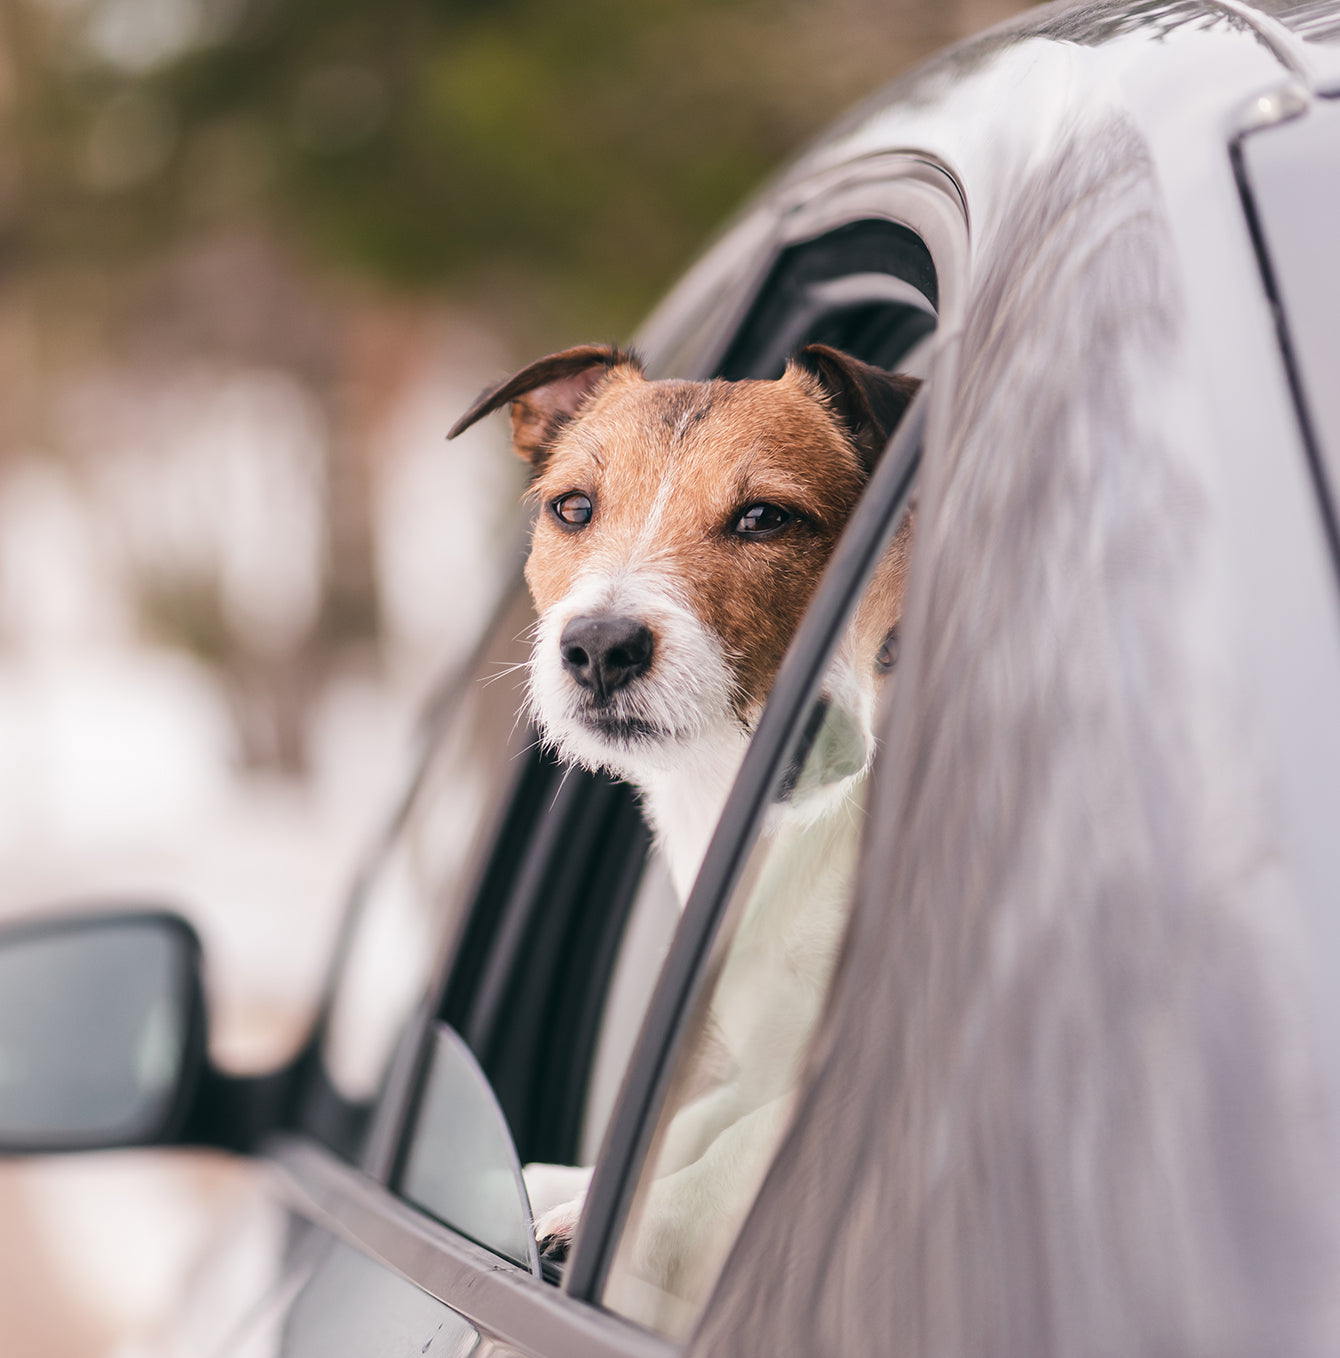 Bringing Your Puppy Home [image: https://cdn